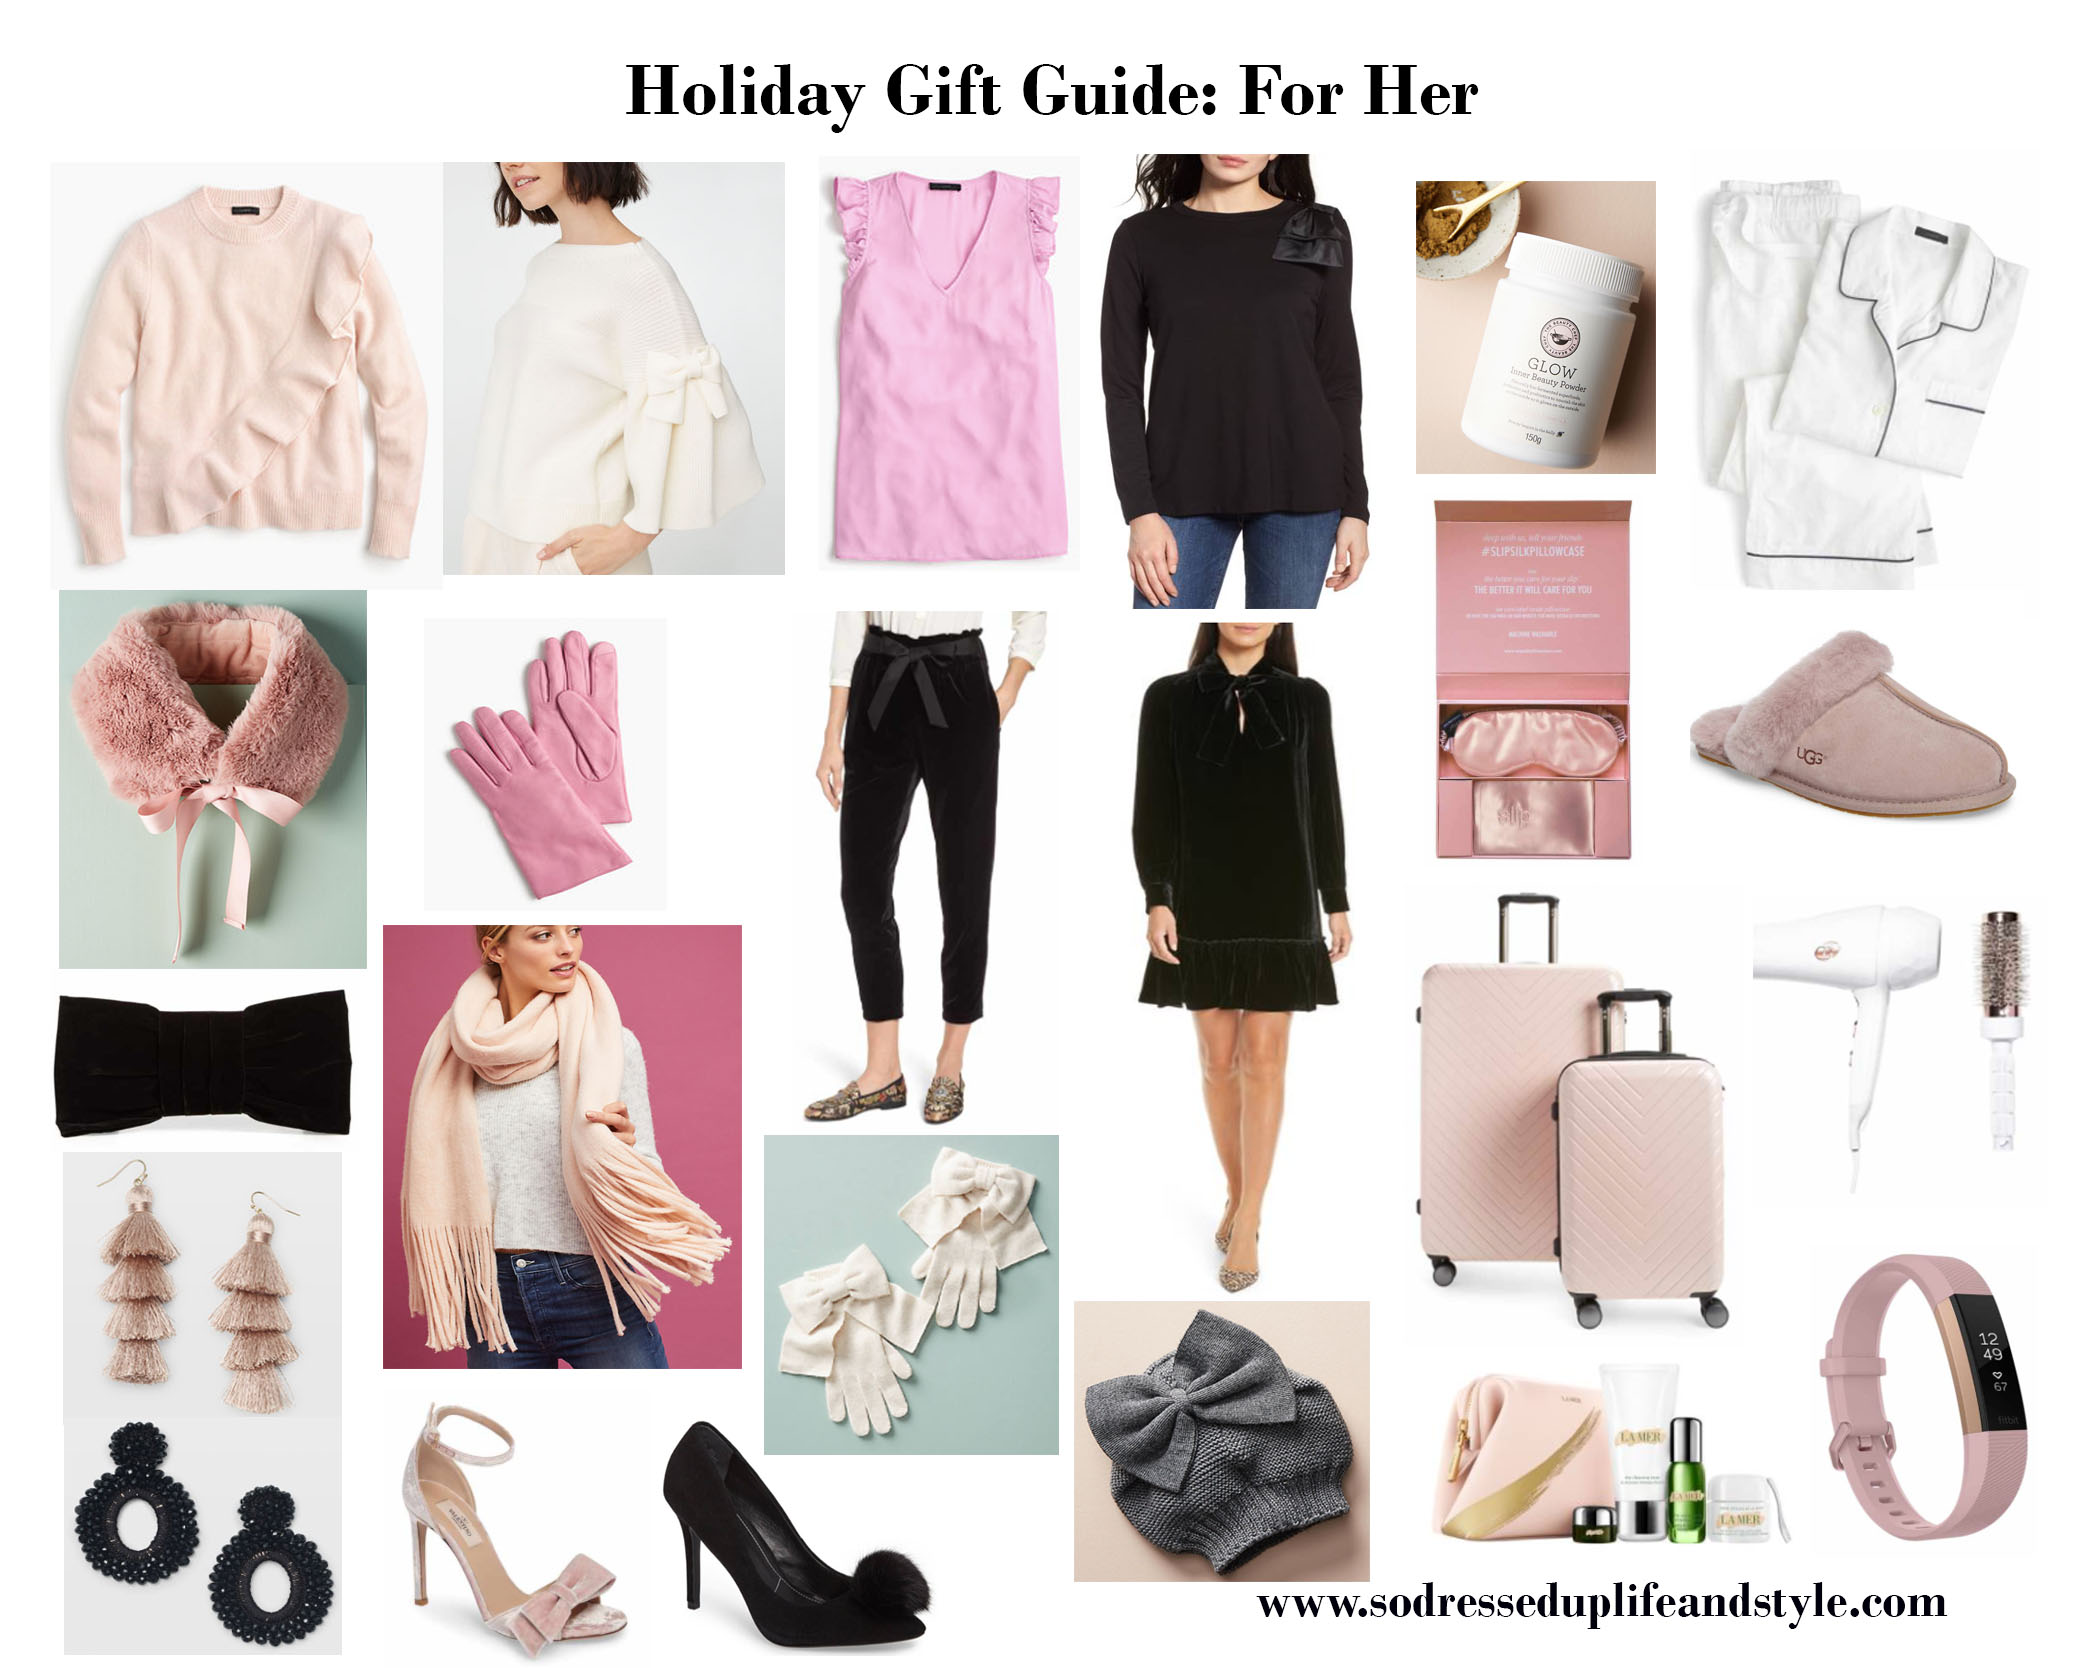 Holiday Gift Guide HER.jpg